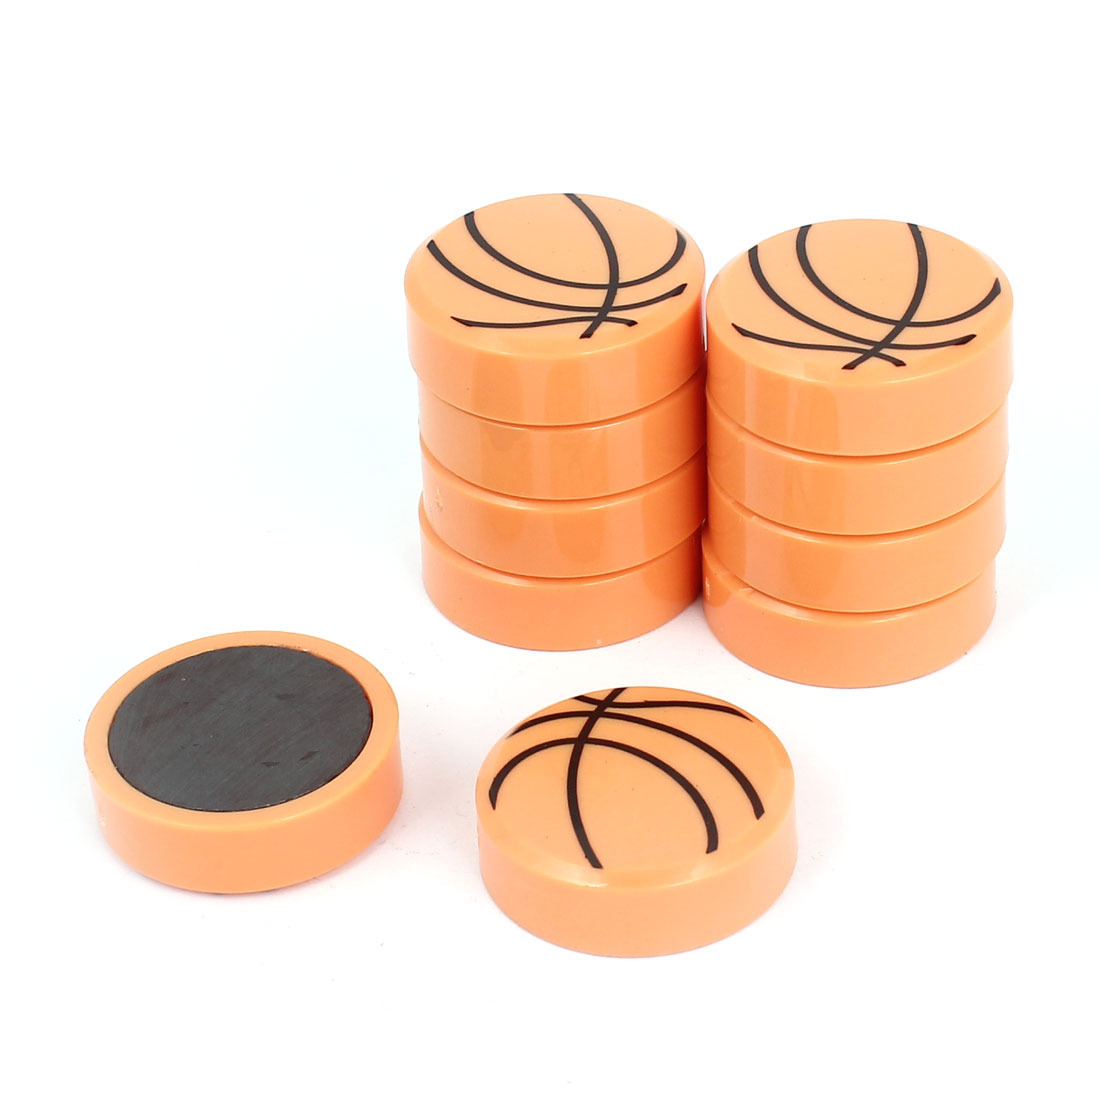 10pcs Basketball Style Plastic Fridge Magnet Sticker Refrigerator Decor Orange